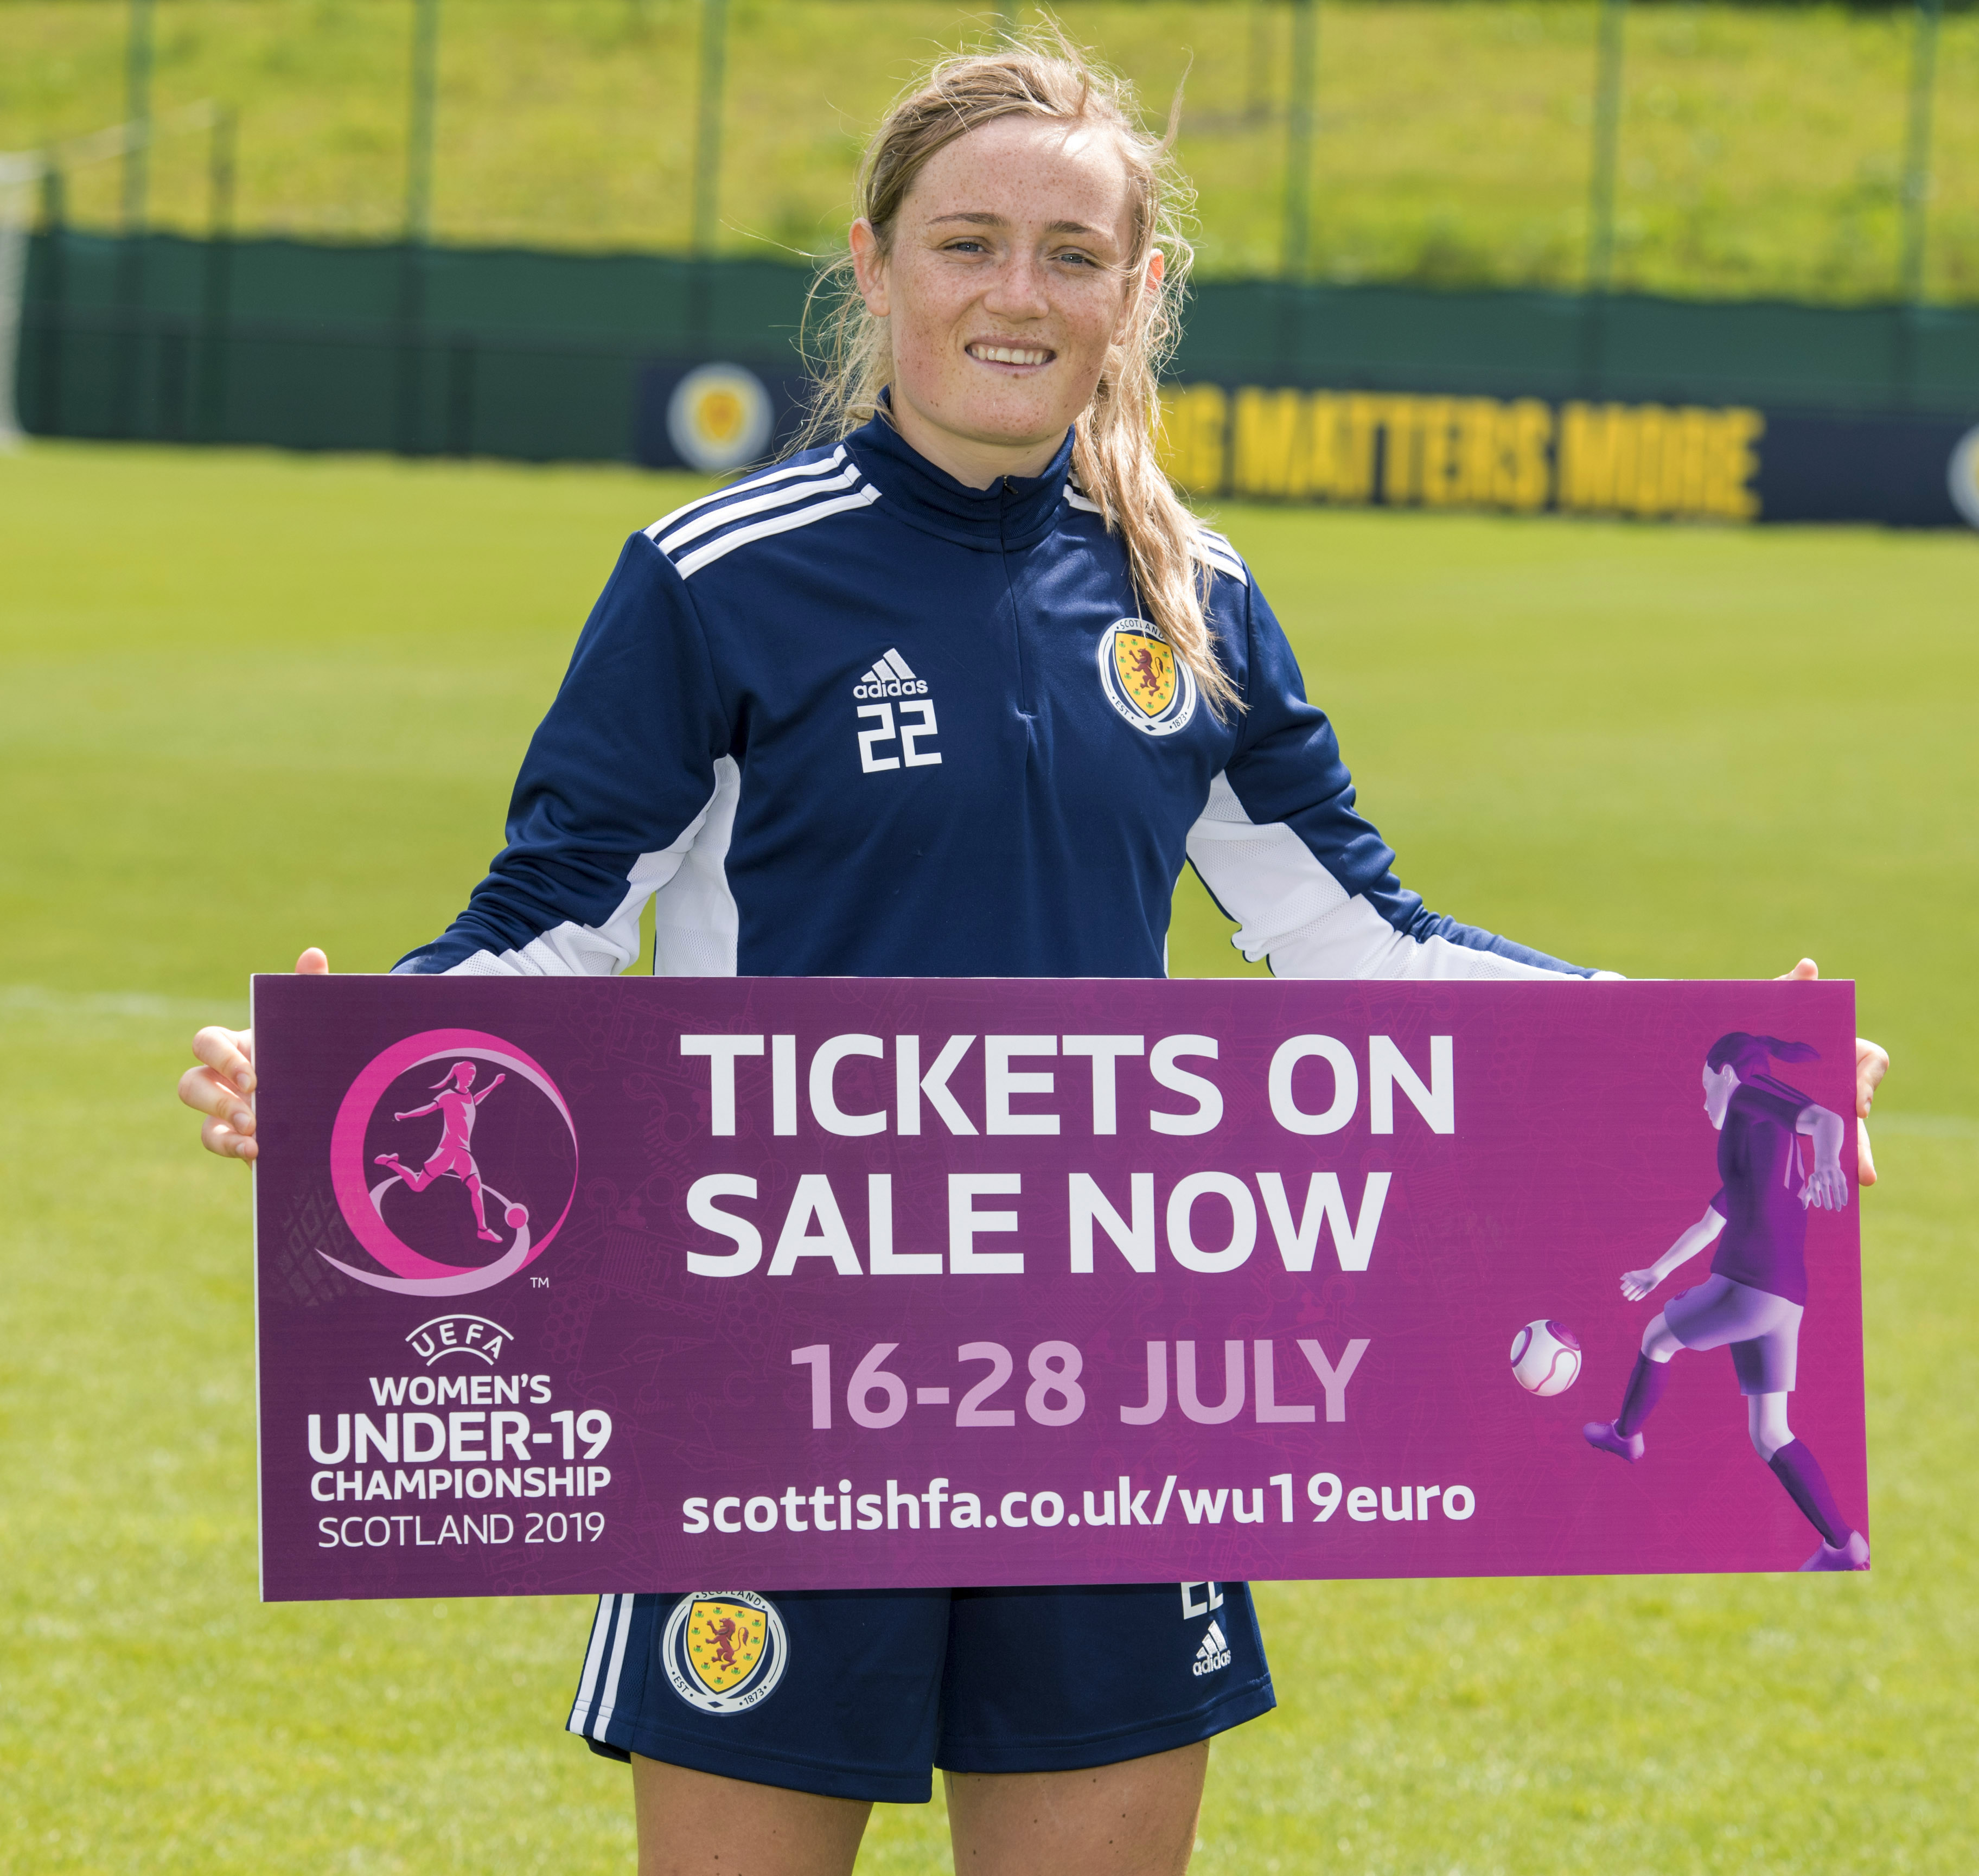 Women's World Cup star Erin Cuthbert has given her backing to the tournament having previously graduated from Scotland's U19 set-up